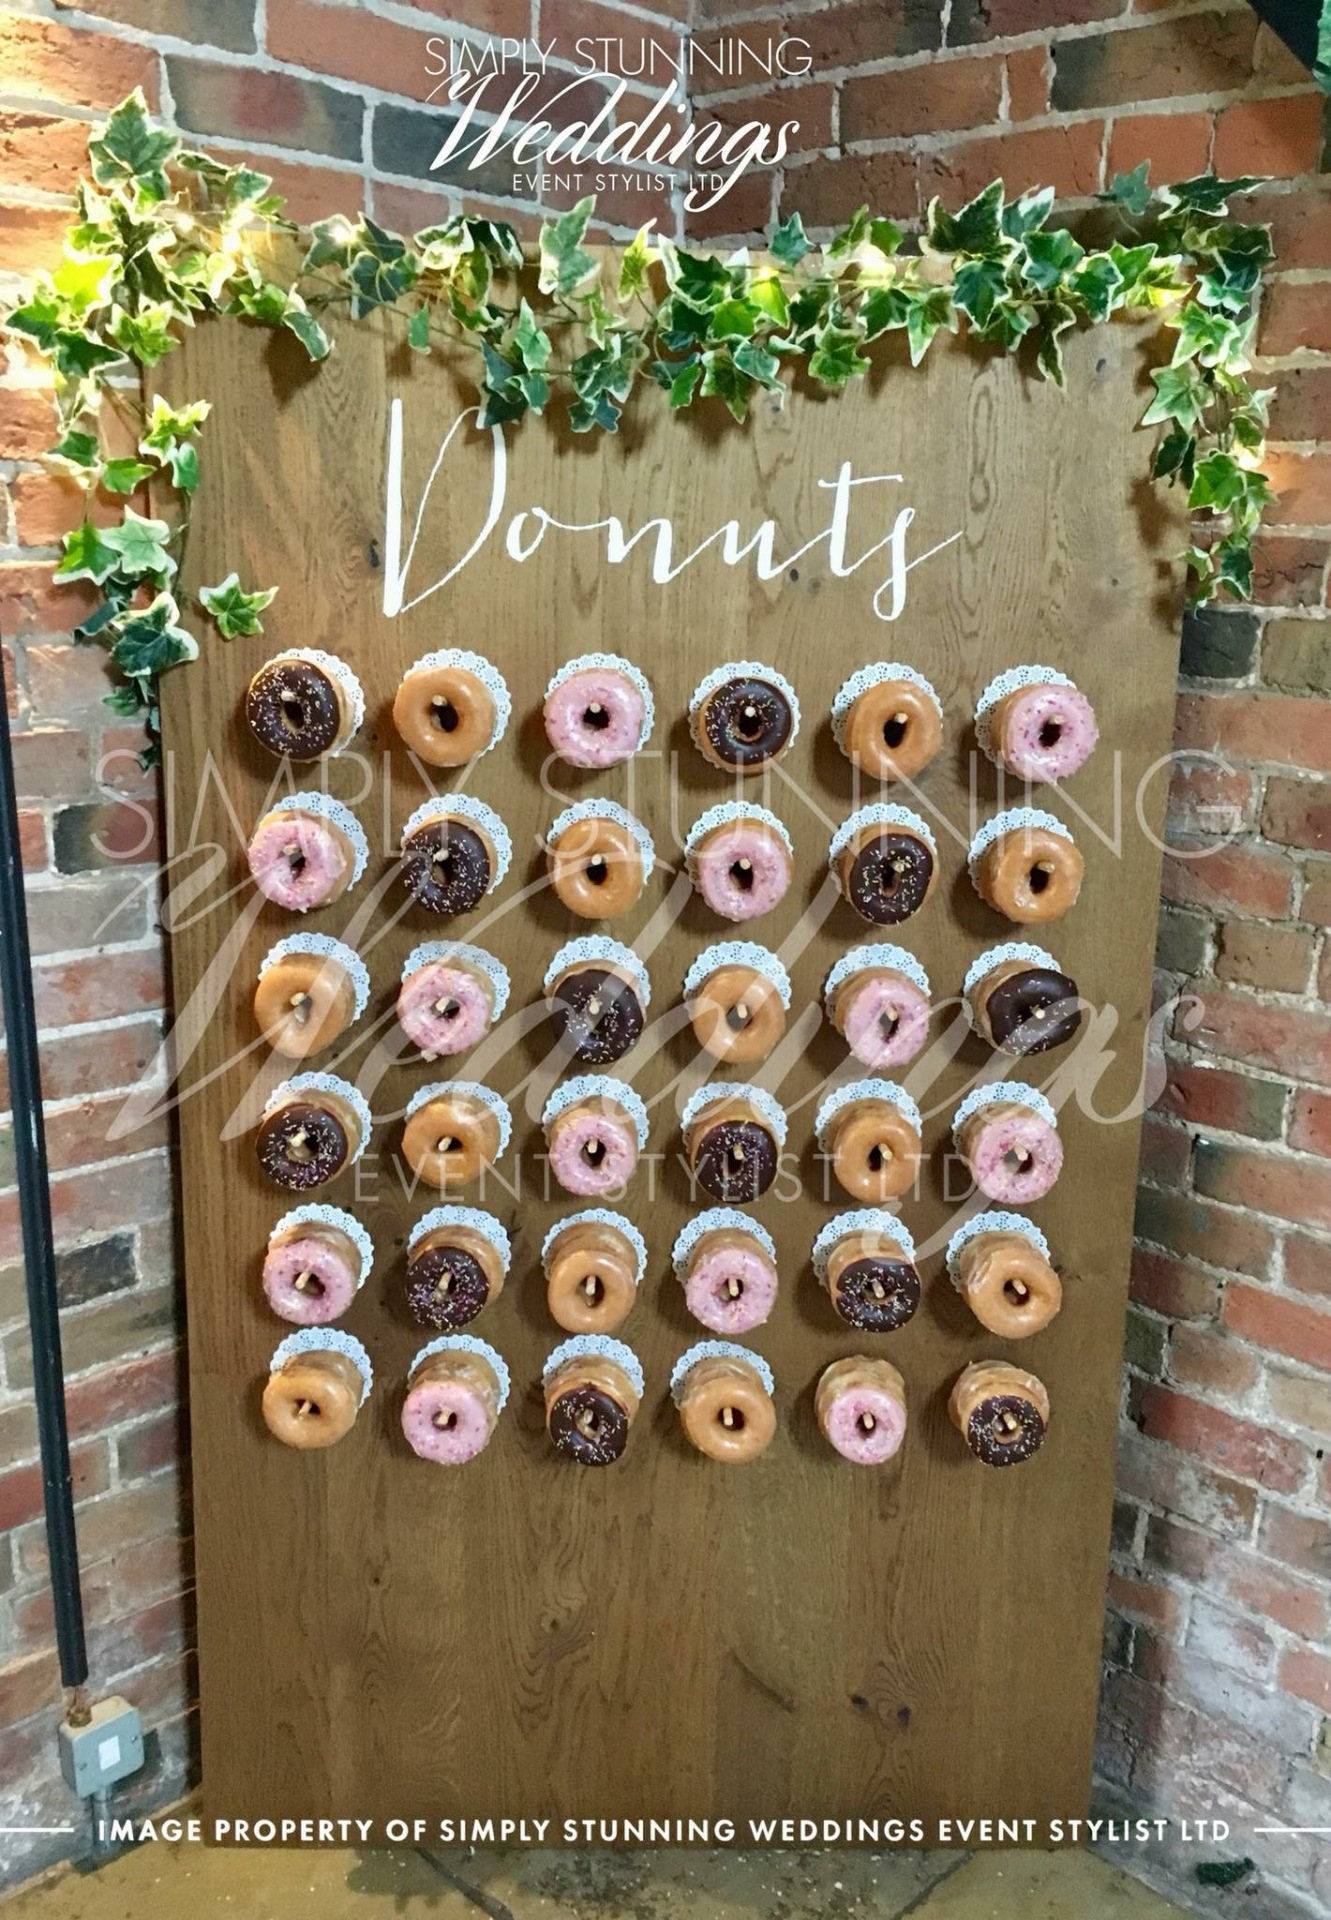 Donut Wall Hire. Krispy Kreme Donuts .Simply Stunning Weddings - Event Sylist Ltd. Venue Dresser. Solihull